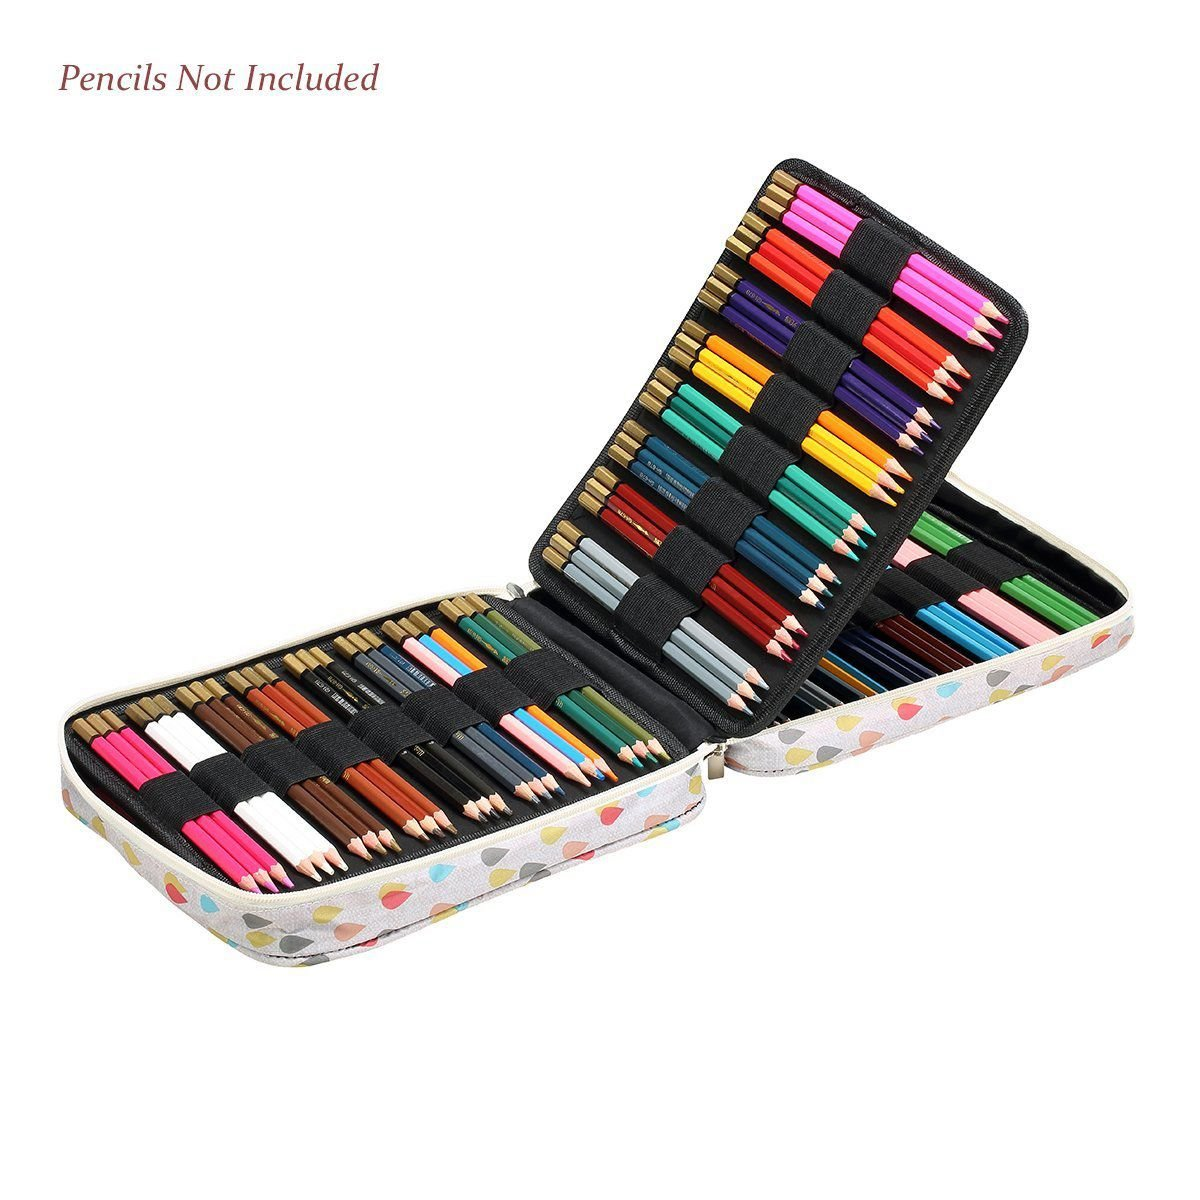 Nrpfell 150 Slots Colored Pencils Universal Pencil Bag Pen Case School Stationery PencilCase Drawing Painting Storage Pouch Pencil Box by Nrpfell (Image #5)